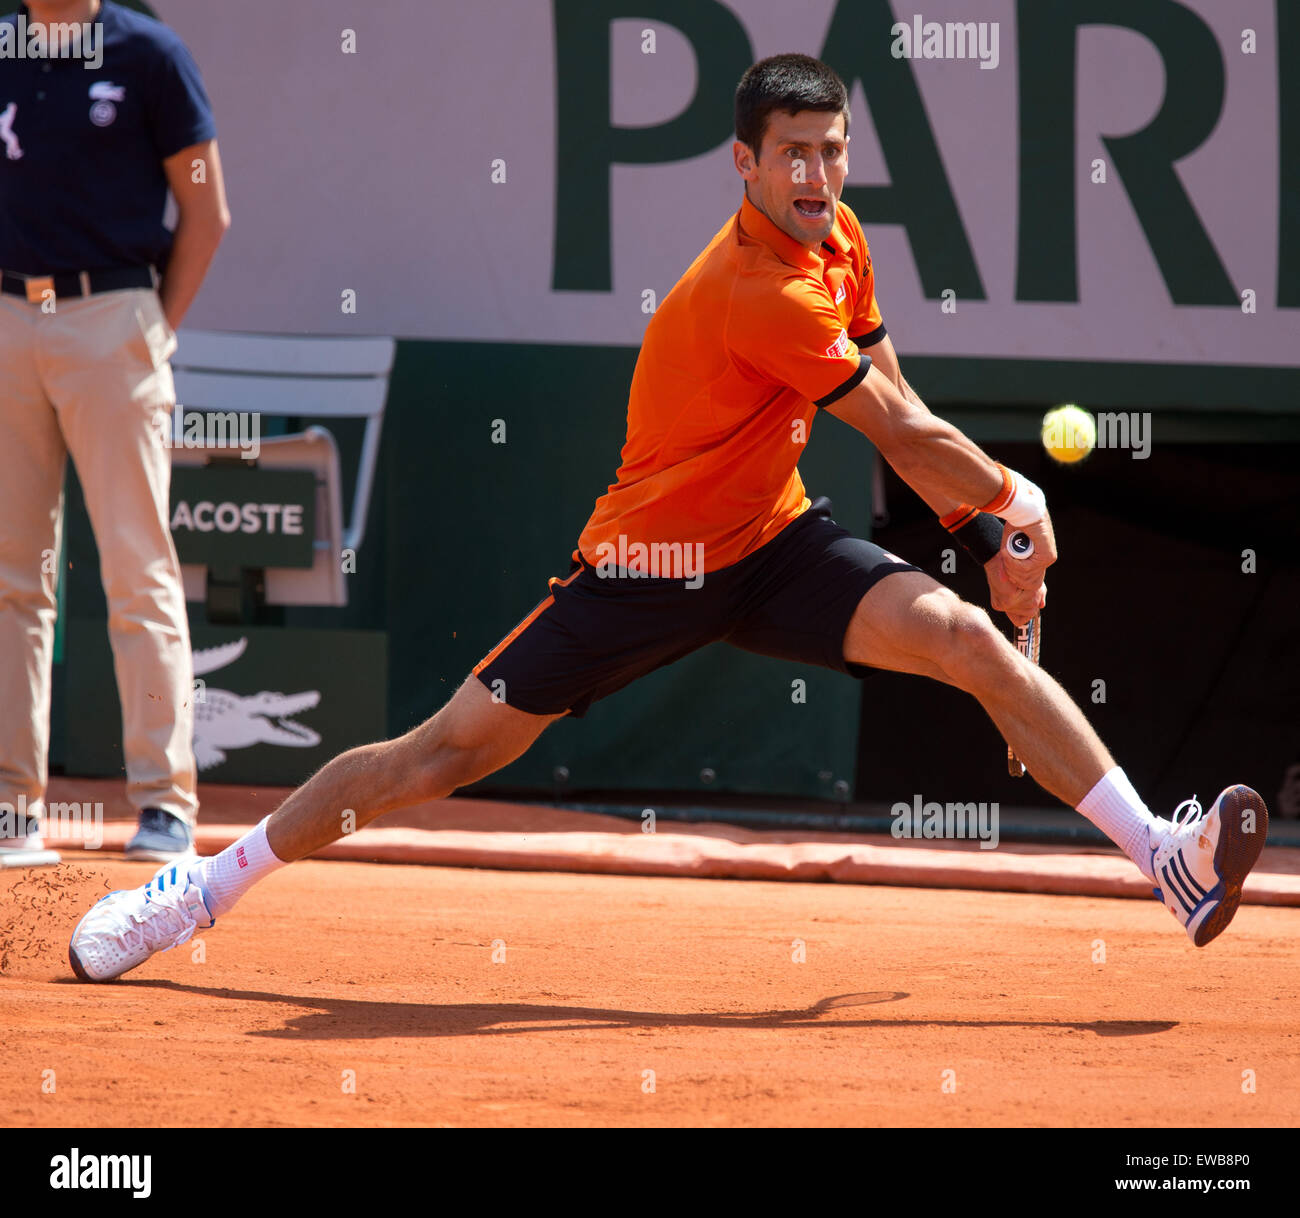 Novak Djokovic (SRB) in action at the French Open 2015 - Stock Image